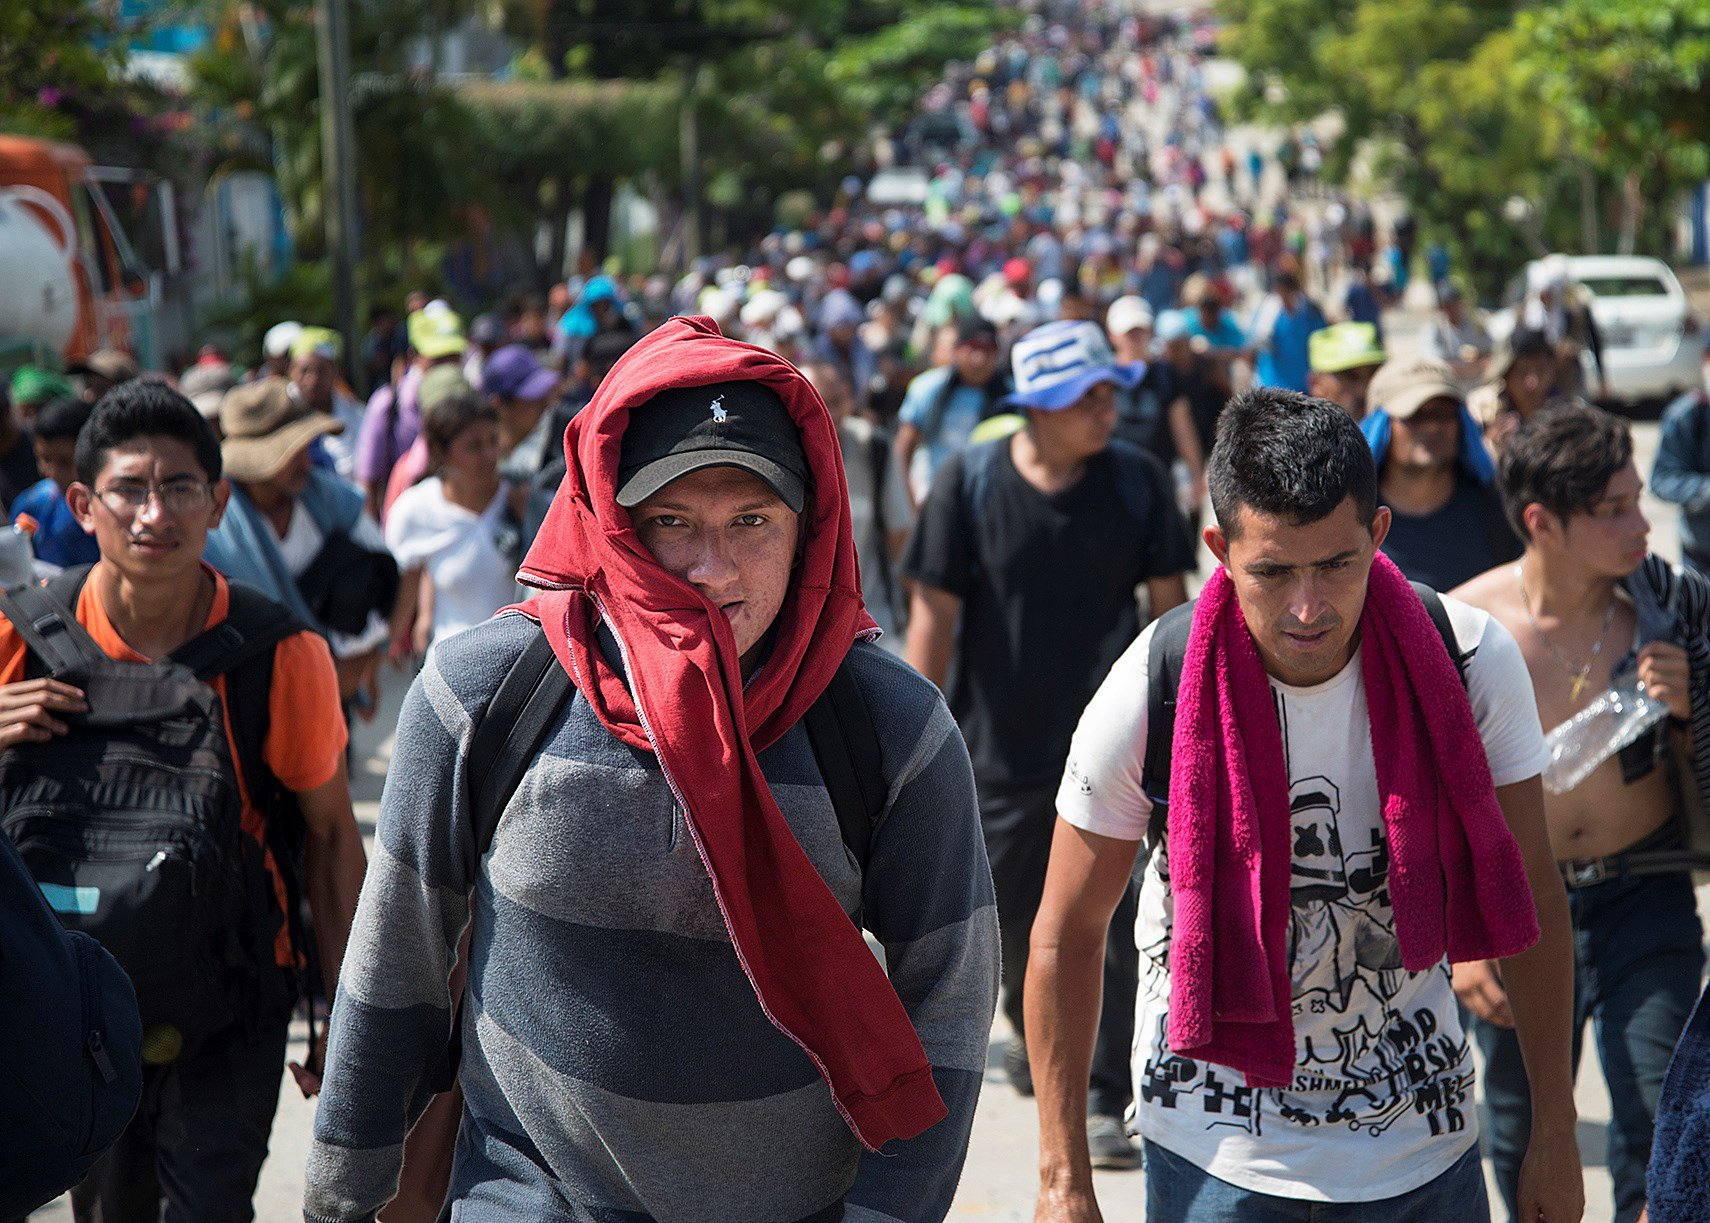 epa07154569 Members of the third migrant caravan, from El Salvador, arrive at the municipality of Mat??as Romero, in the state of Oaxaca, Mexico, 09 November 2018. A third caravan originating in El Salvador left the southern state of Chiapas today to enter Oaxaca and follow the same route as the previous contingents. After failing to get the UN to provide them with free transportation, the thousands of migrants from the caravan of Central Americans camped in Mexico City today agreed to prepare to leave the capital on Saturday and resume their march on foot to the United States. EPA/Lusi Villalobos